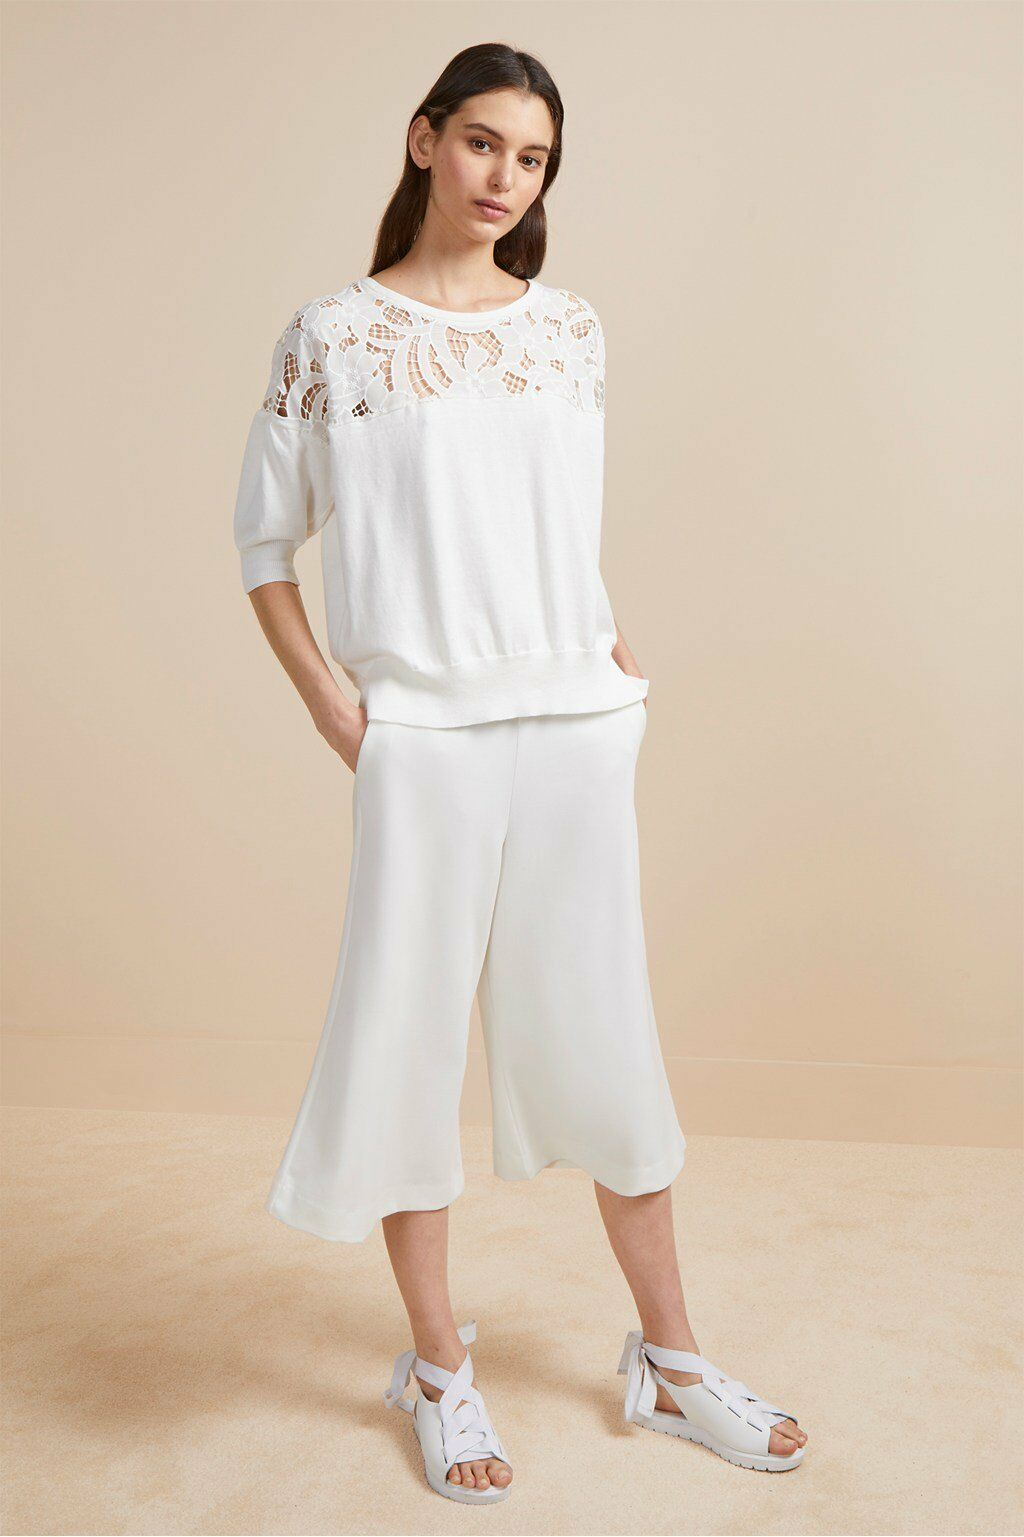 French Connection Women's Salerno Lace Knit Jumper (Summer White) RRP